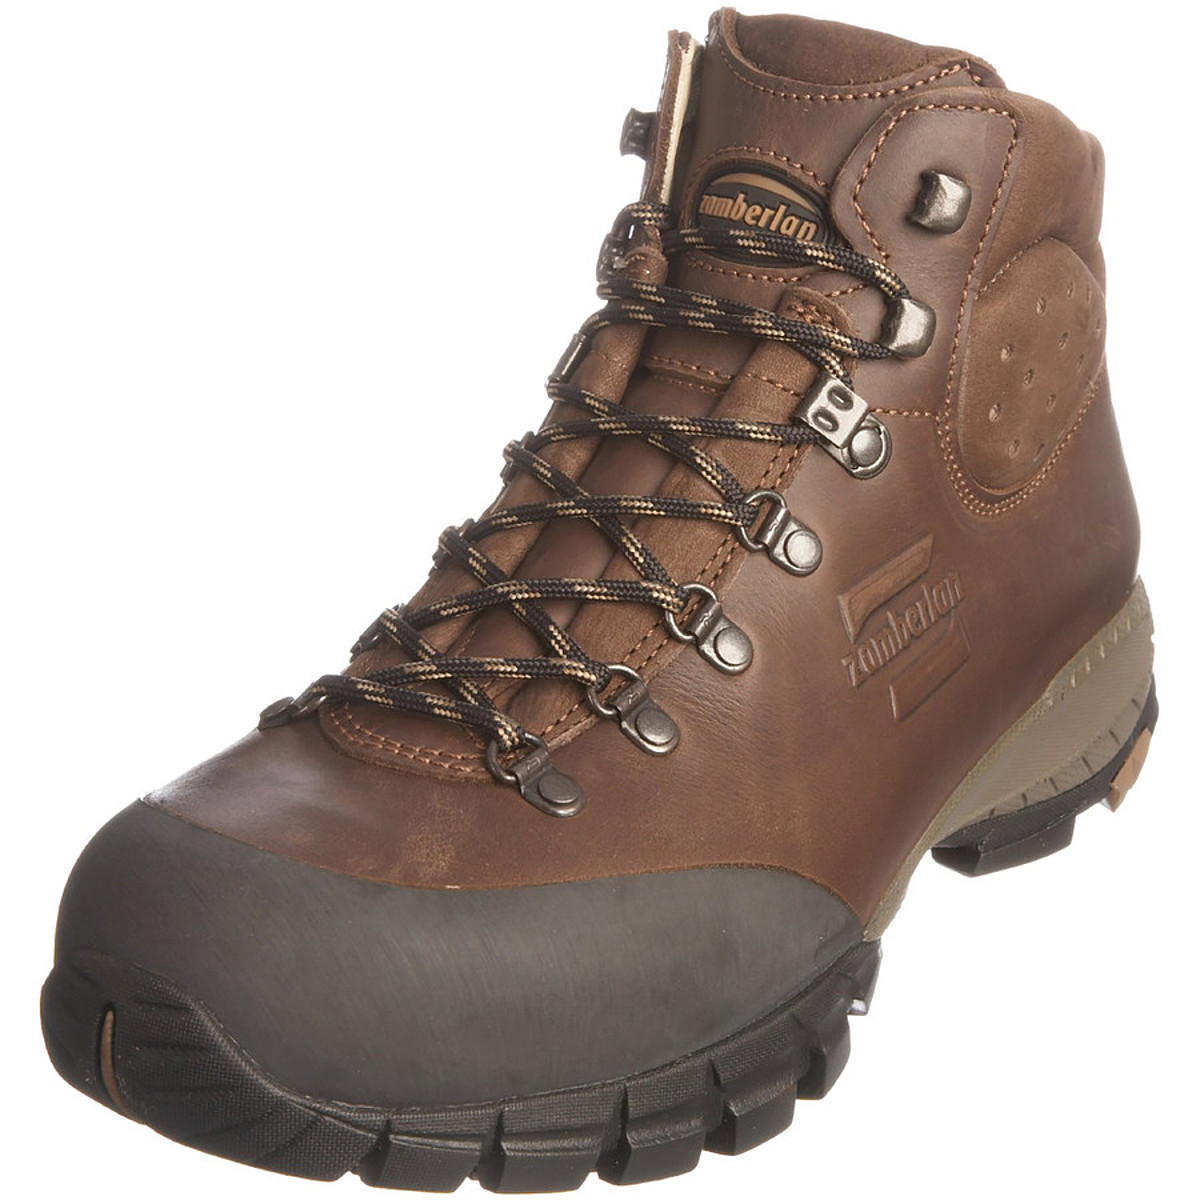 photo: Zamberlan 308 Trekker RR backpacking boot